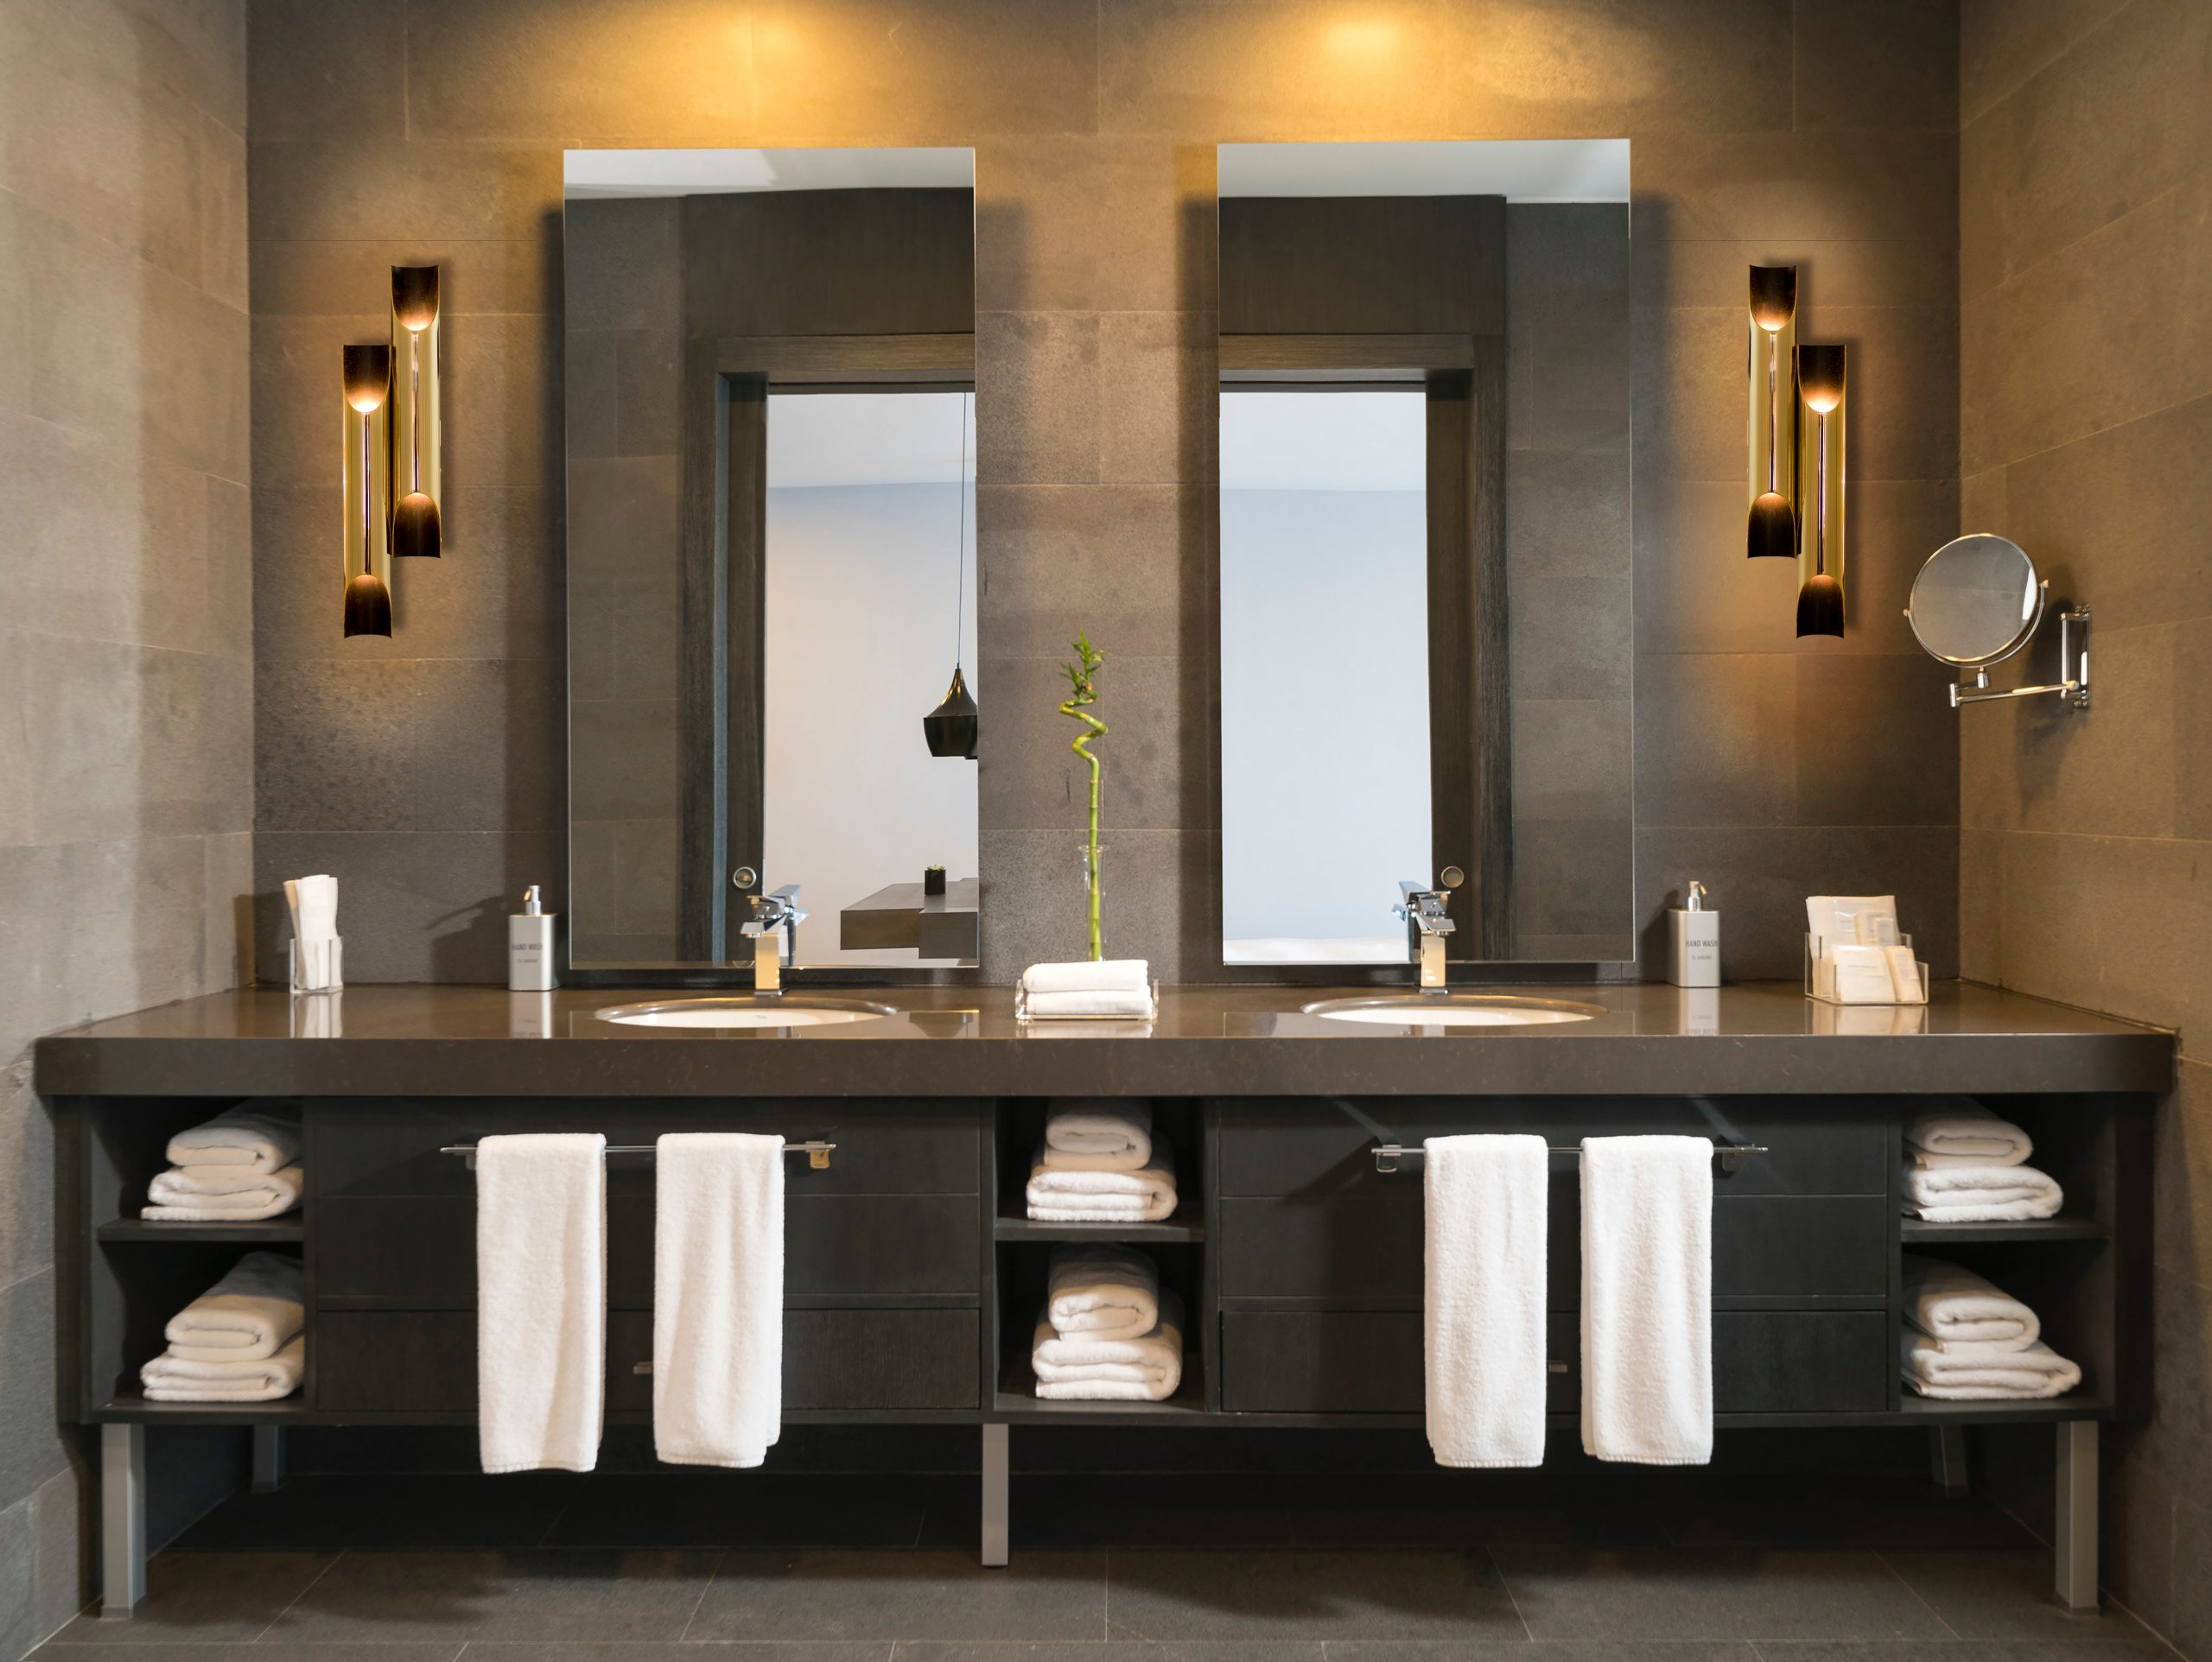 Here You Can Find The New Trends in America Home Design For This Year!